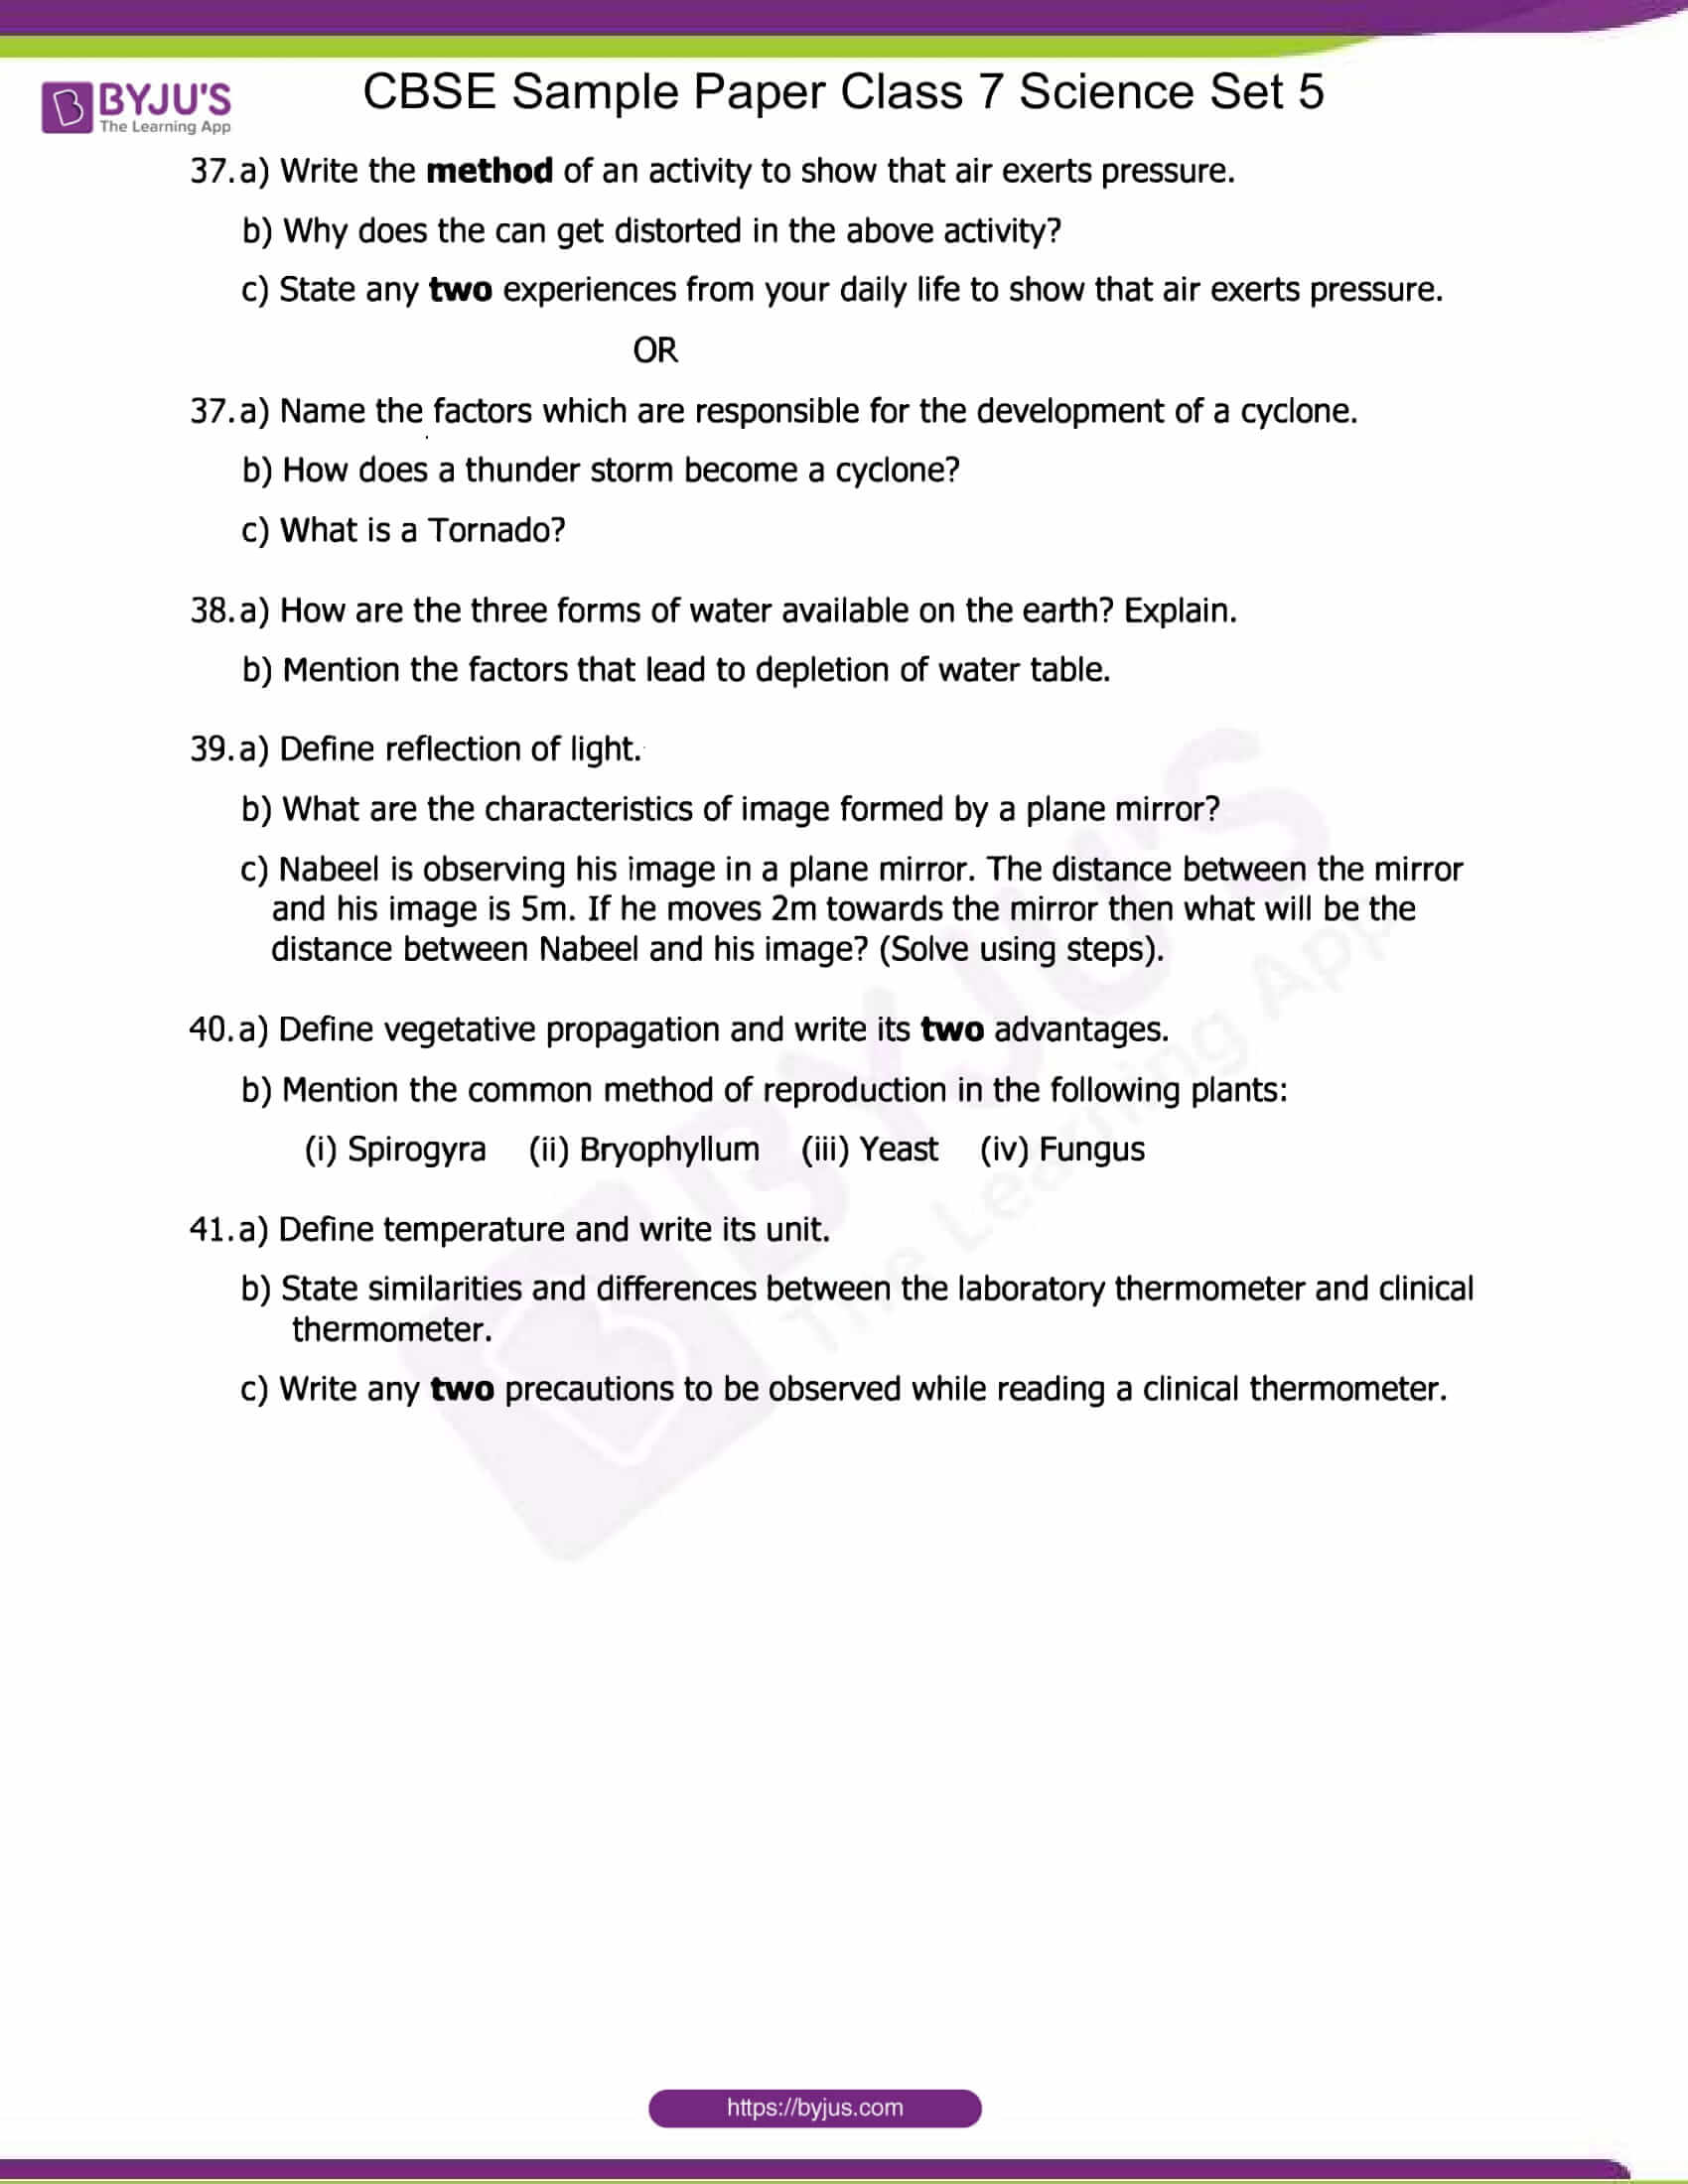 cbse sample paper class 7 science set 5